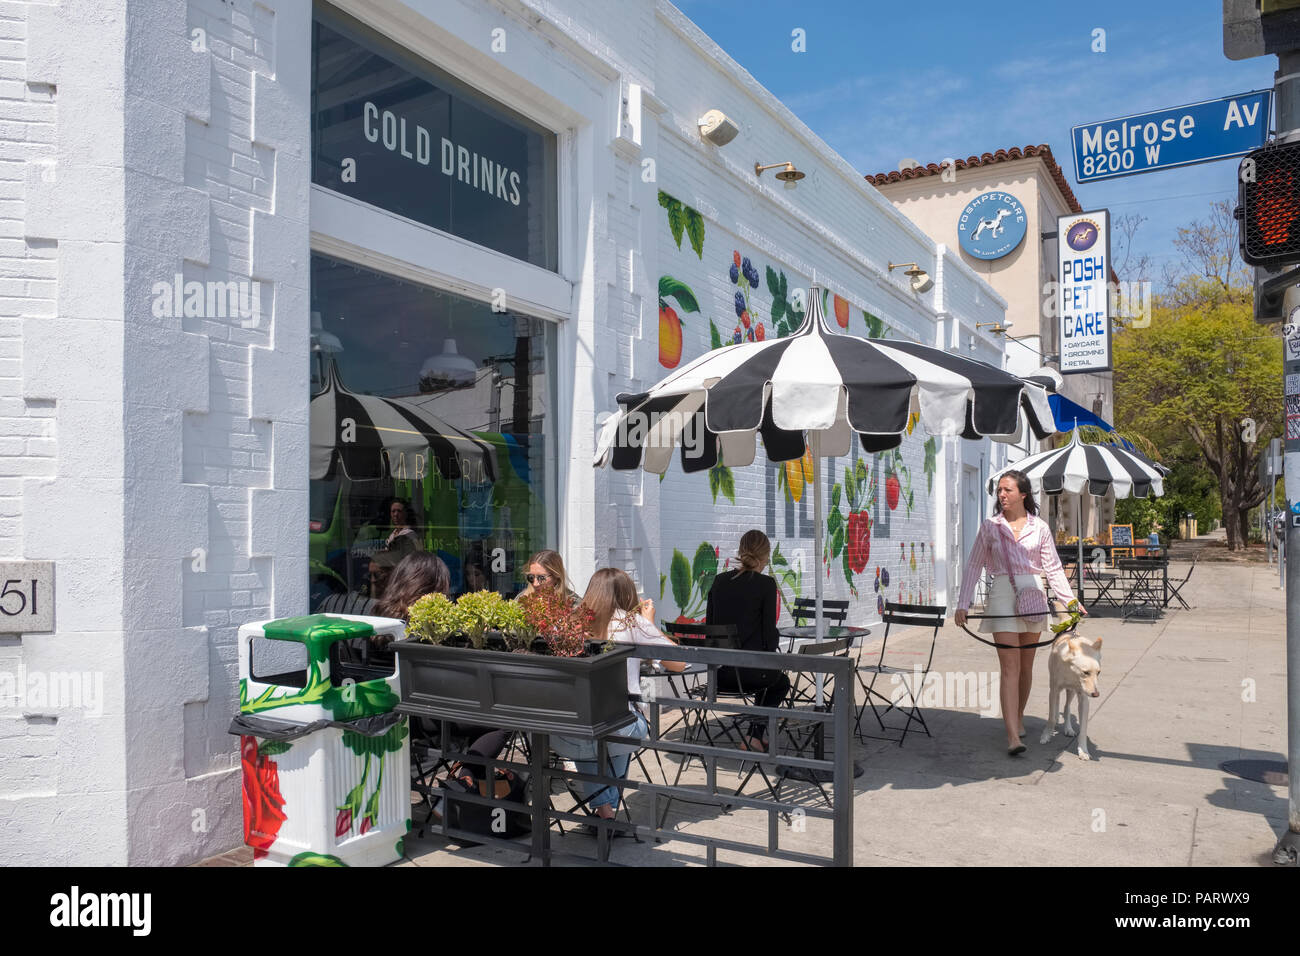 Sidewalk cafe with outdoor seating on fashionable Melrose Avenue, West Hollywood, Los Angeles, LA, California, USA - Stock Image